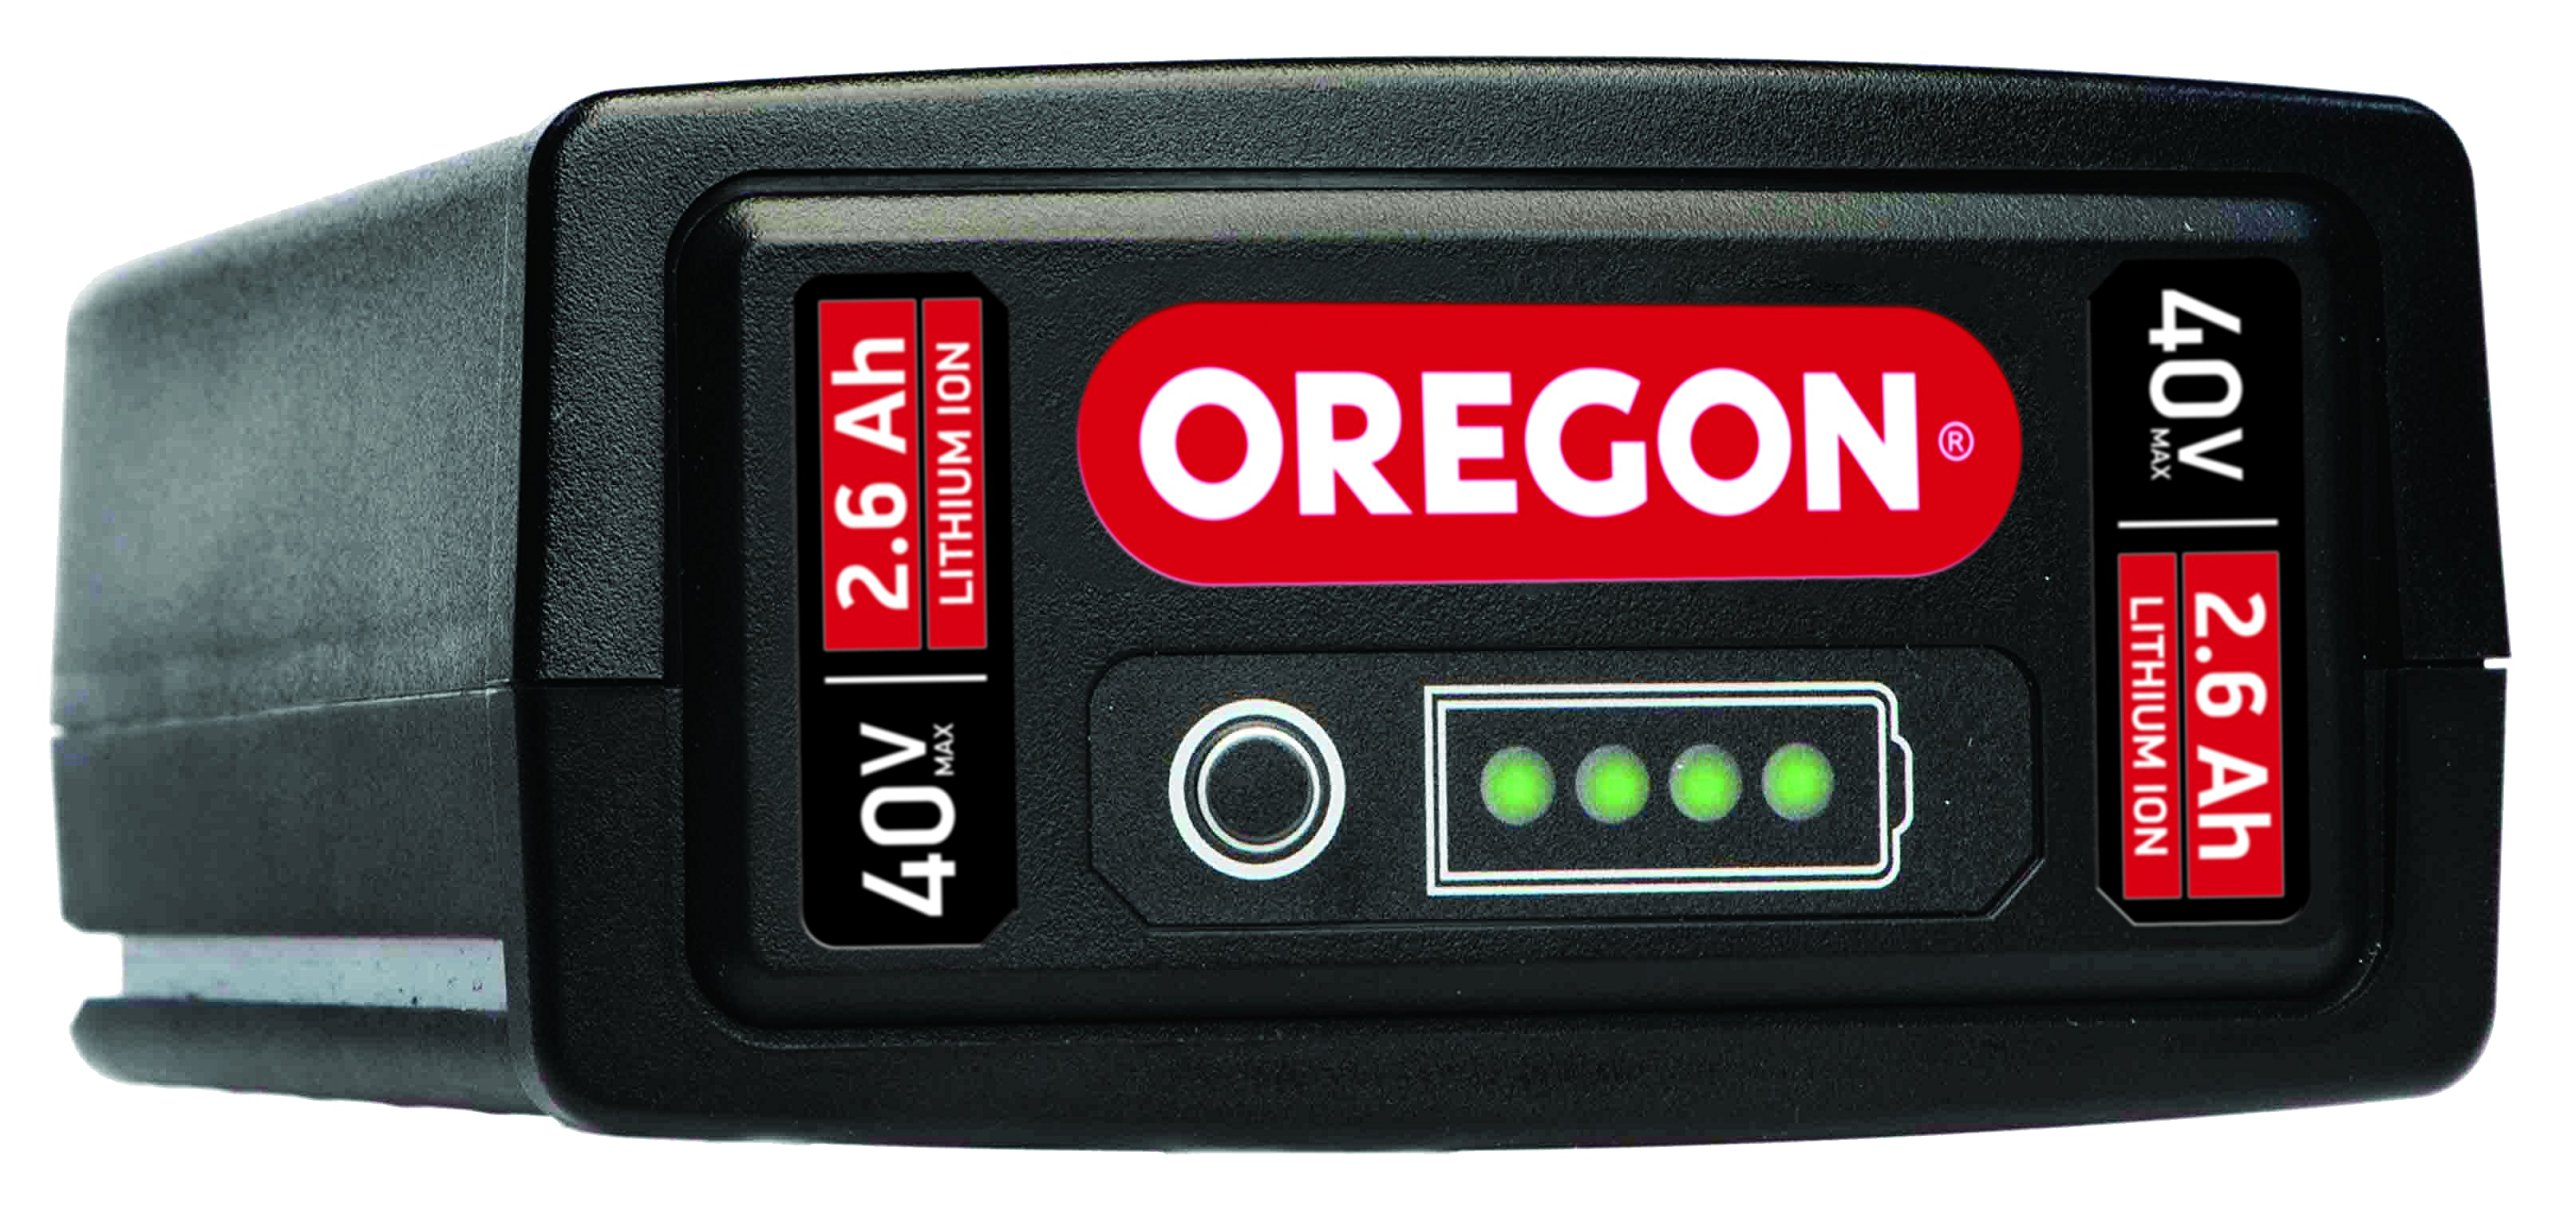 Oregon Cordless 40V 2.6 Ah Lithium-Ion Battery Pack